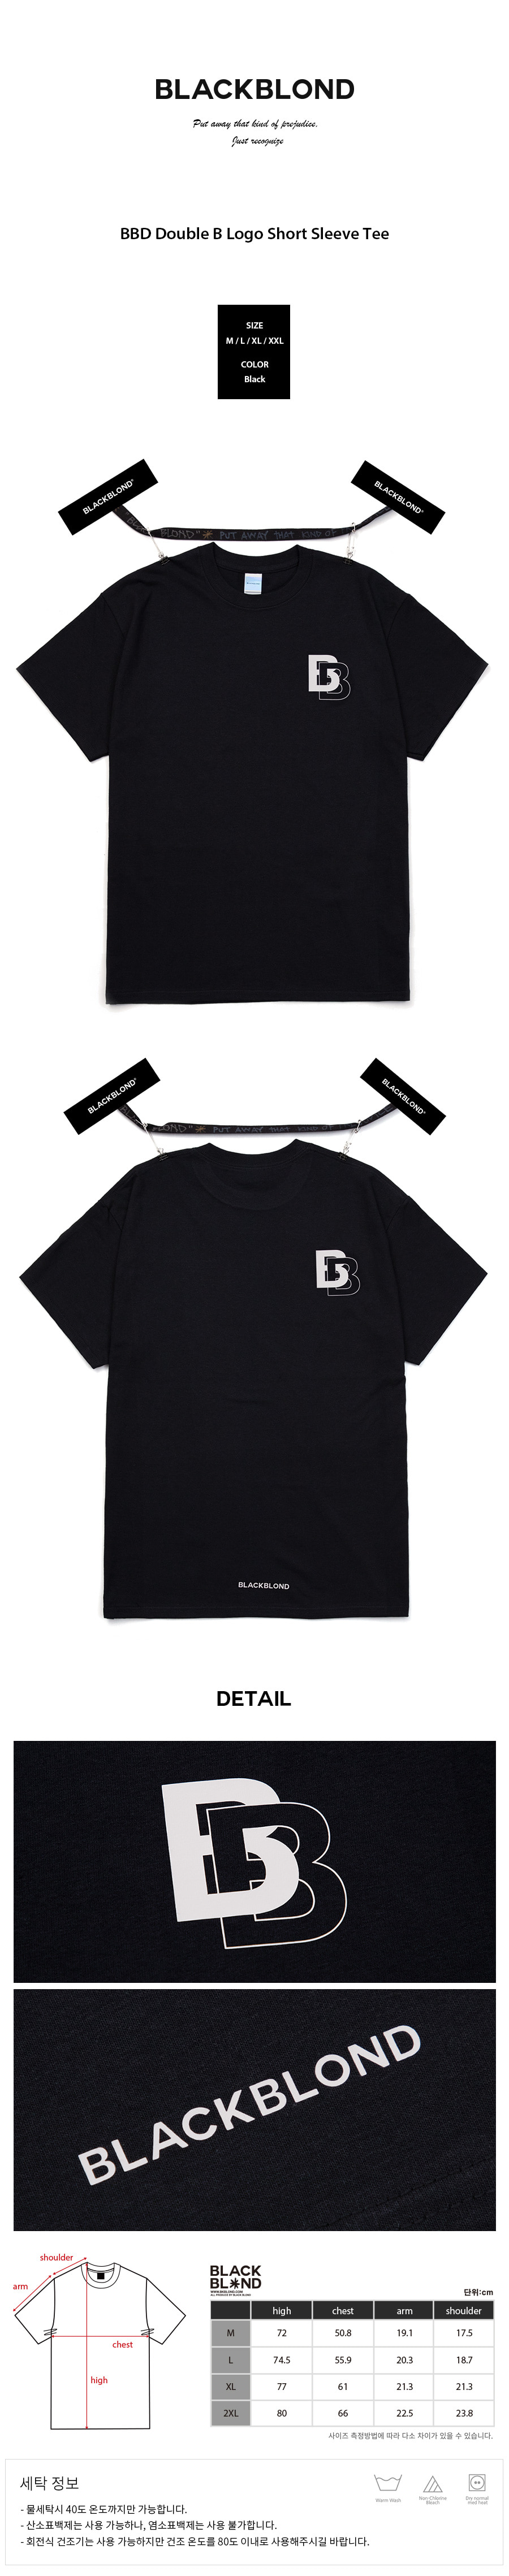 블랙블론드 BLACKBLOND - BBD Double B Logo Short Sleeve Tee (Black)